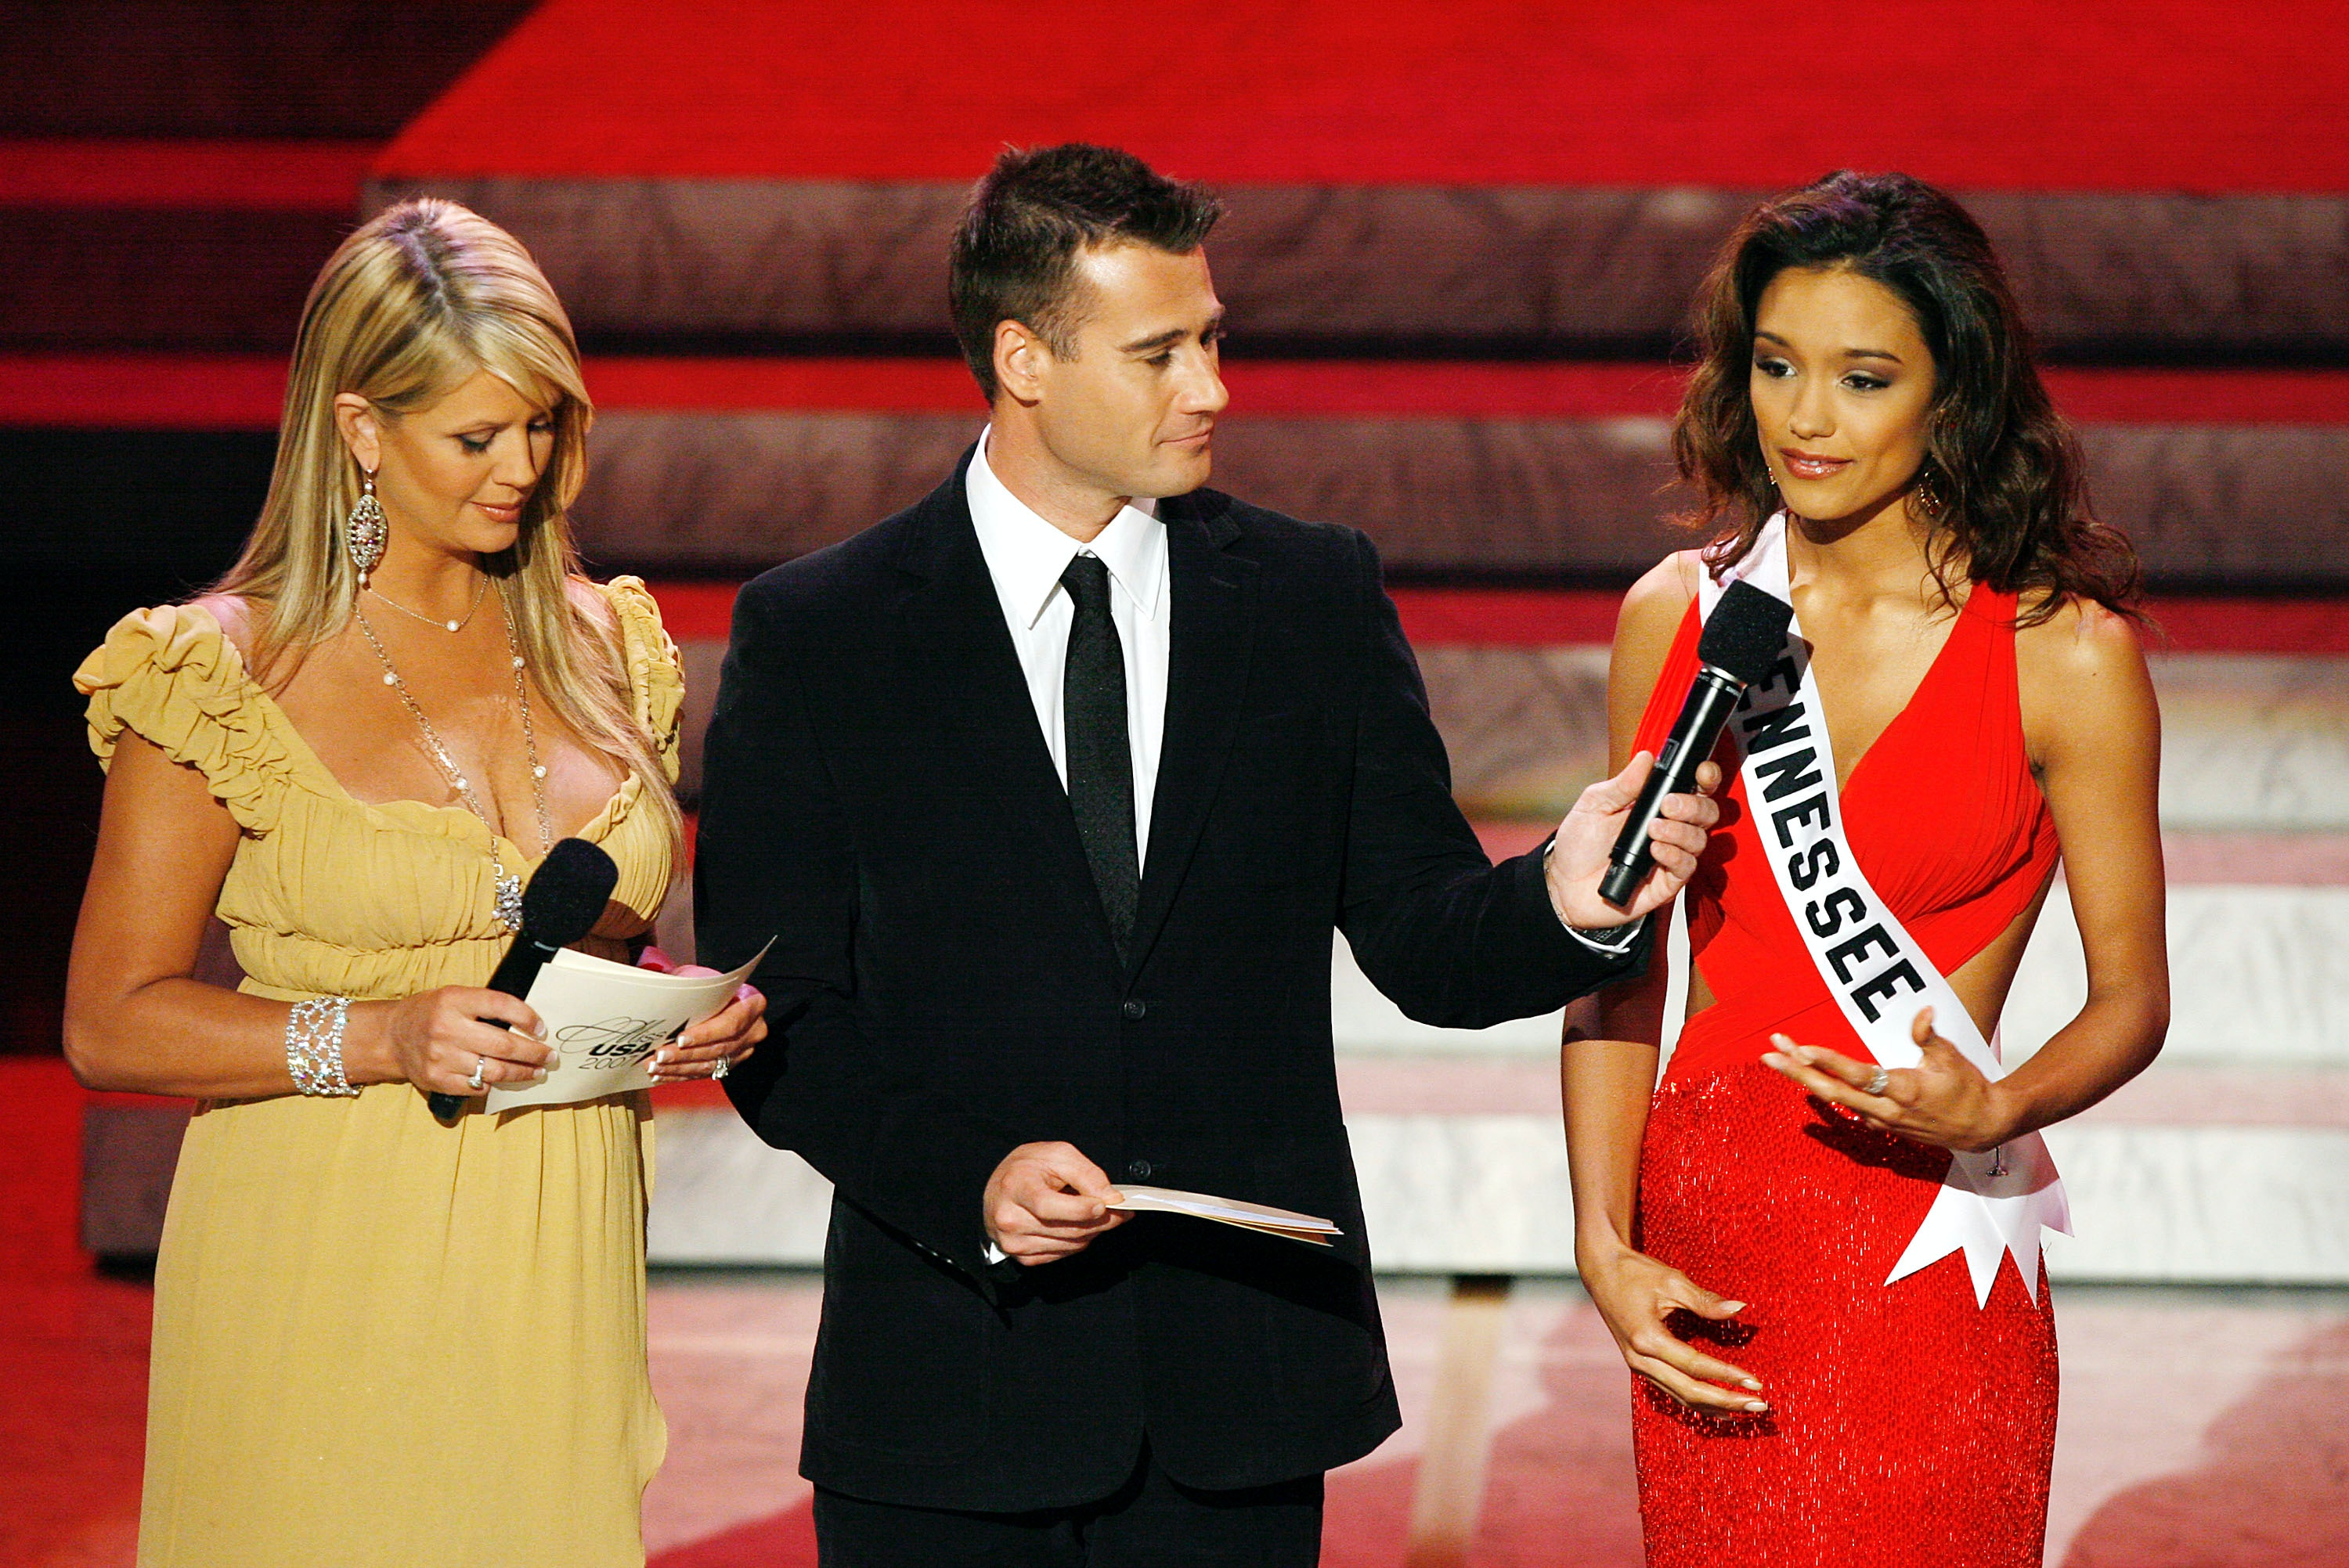 the 4 most awkward questions beauty pageant contestants have been the 4 most awkward questions beauty pageant contestants have been asked in interview portions of their competitions